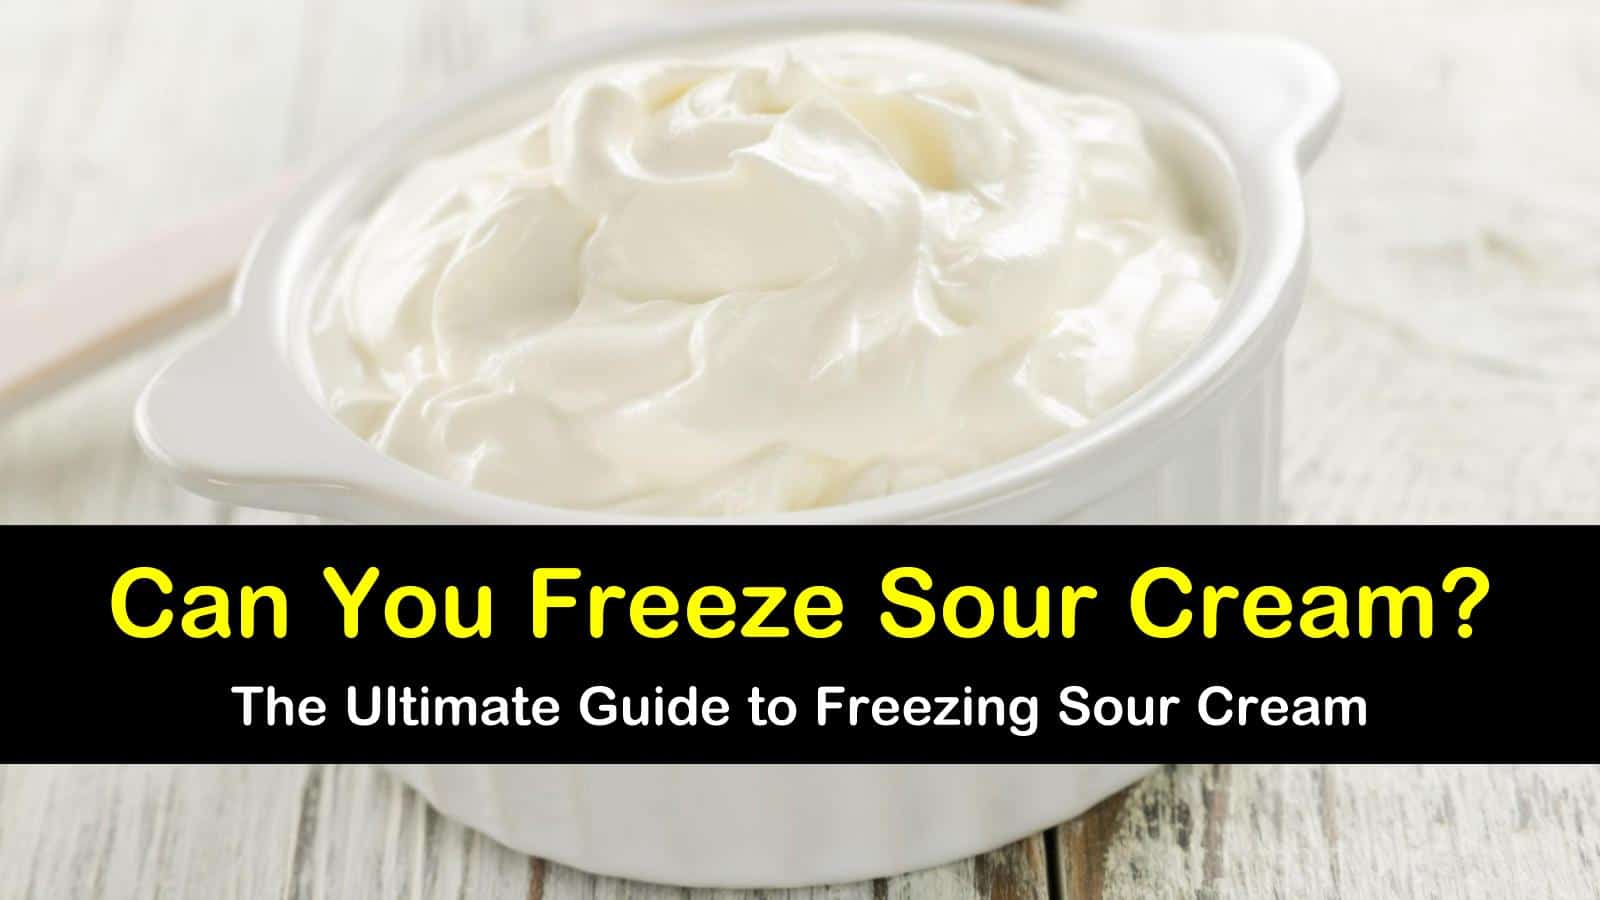 can you freeze sour cream titleimg1